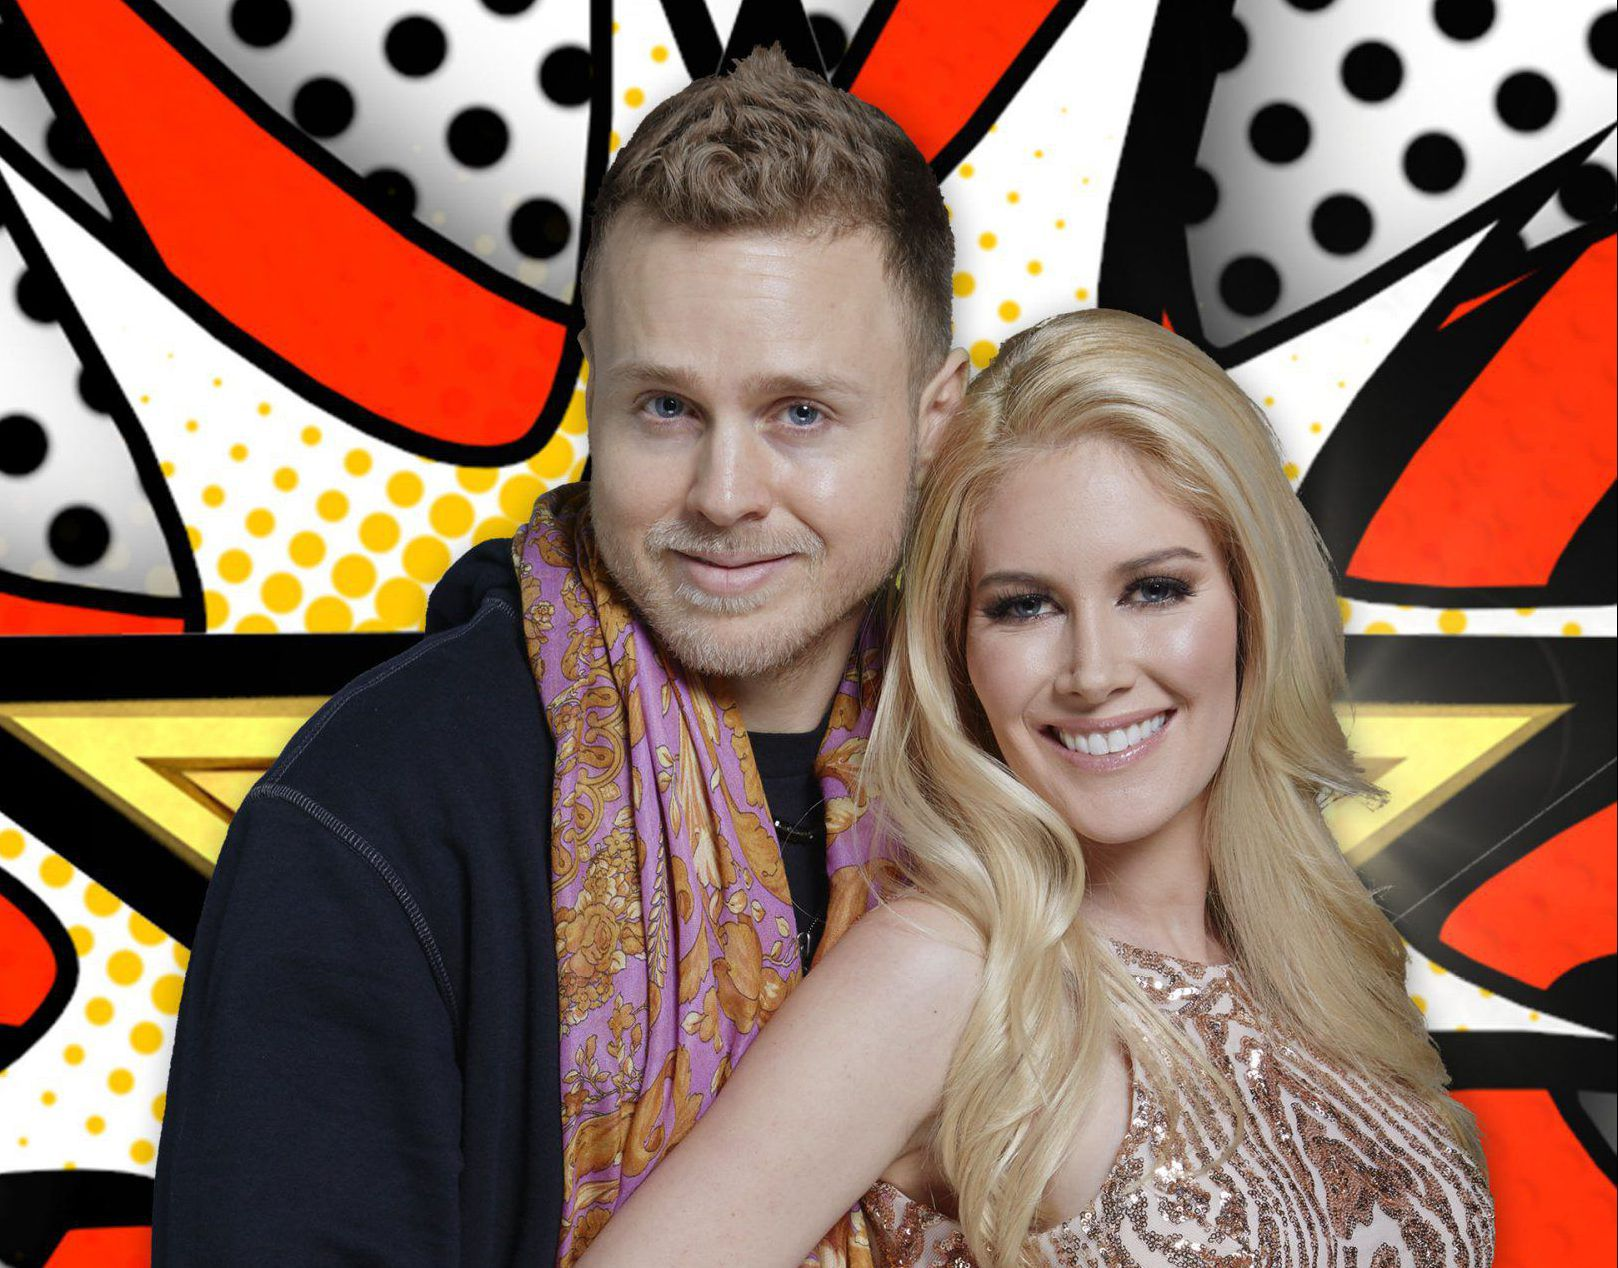 Heidi Montag and Spencer Pratt have revealed the sex of their baby